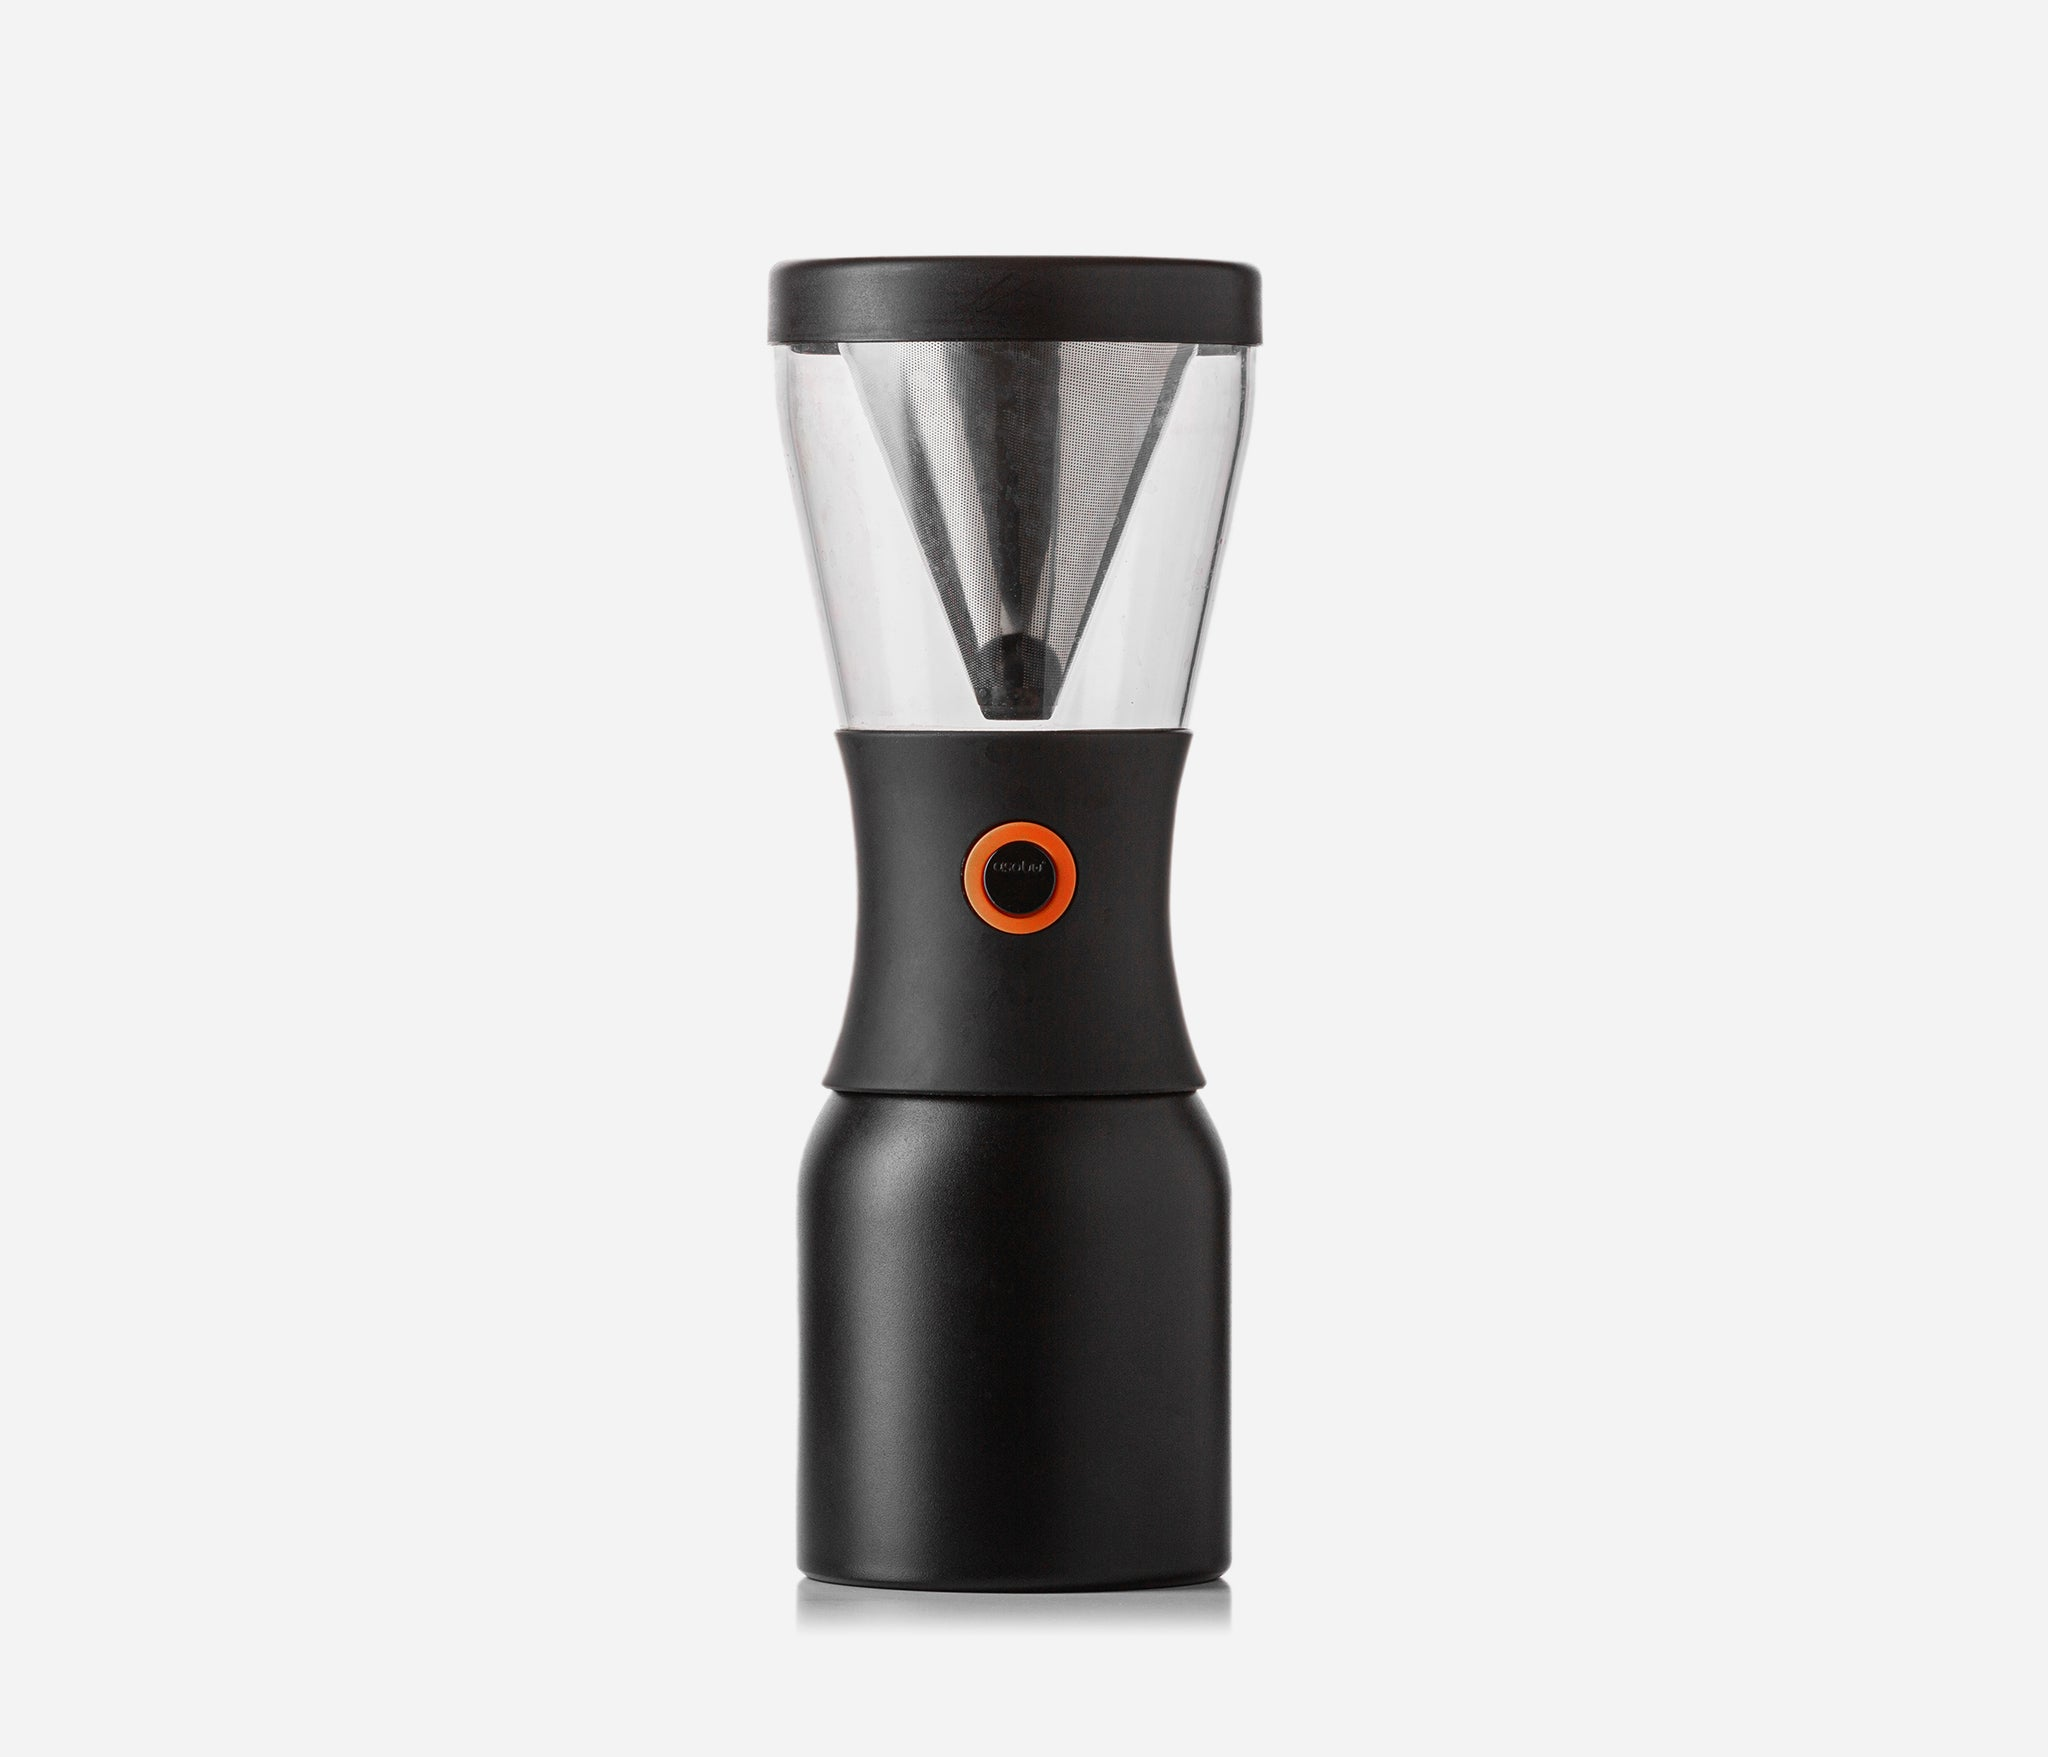 Asobu Cold Coffee Brewer